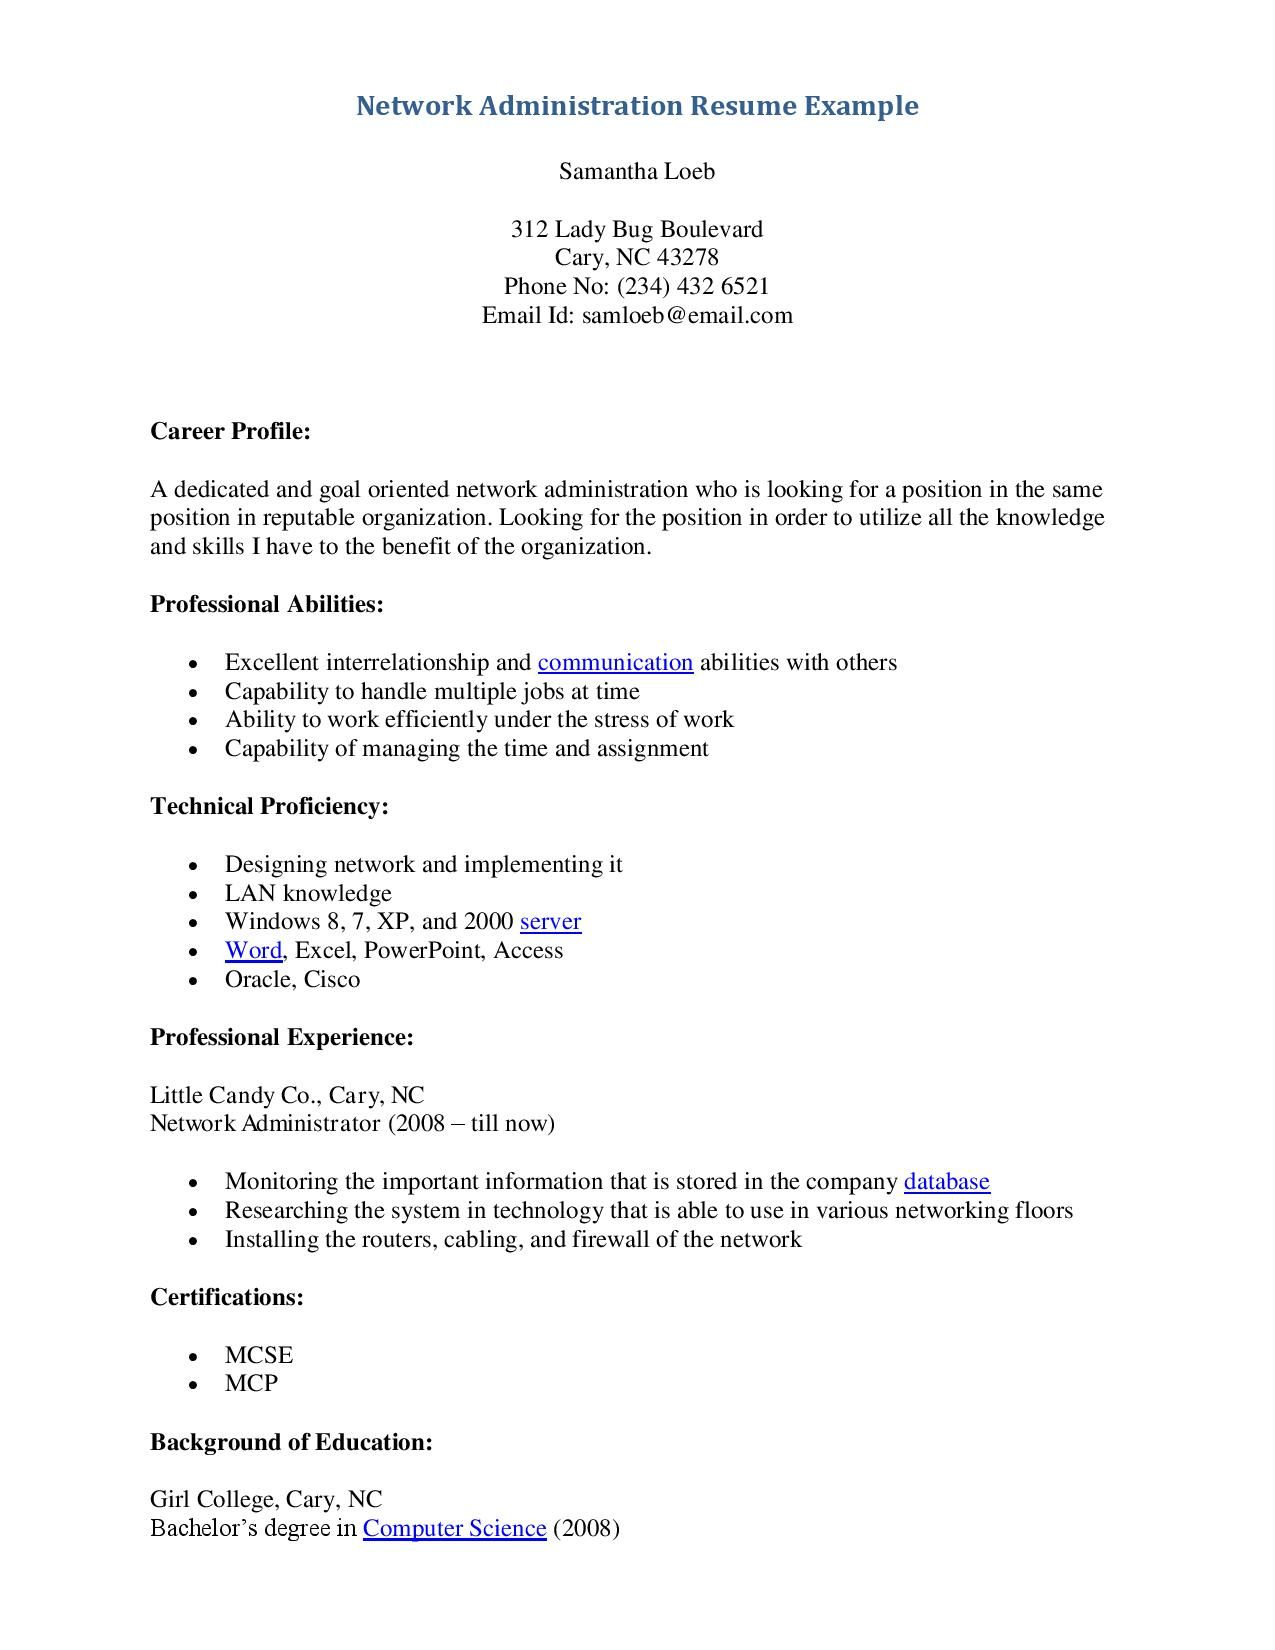 Sample Cover Letter Internship Best Cover Letter For Engineering Internshipthis Is A Format For